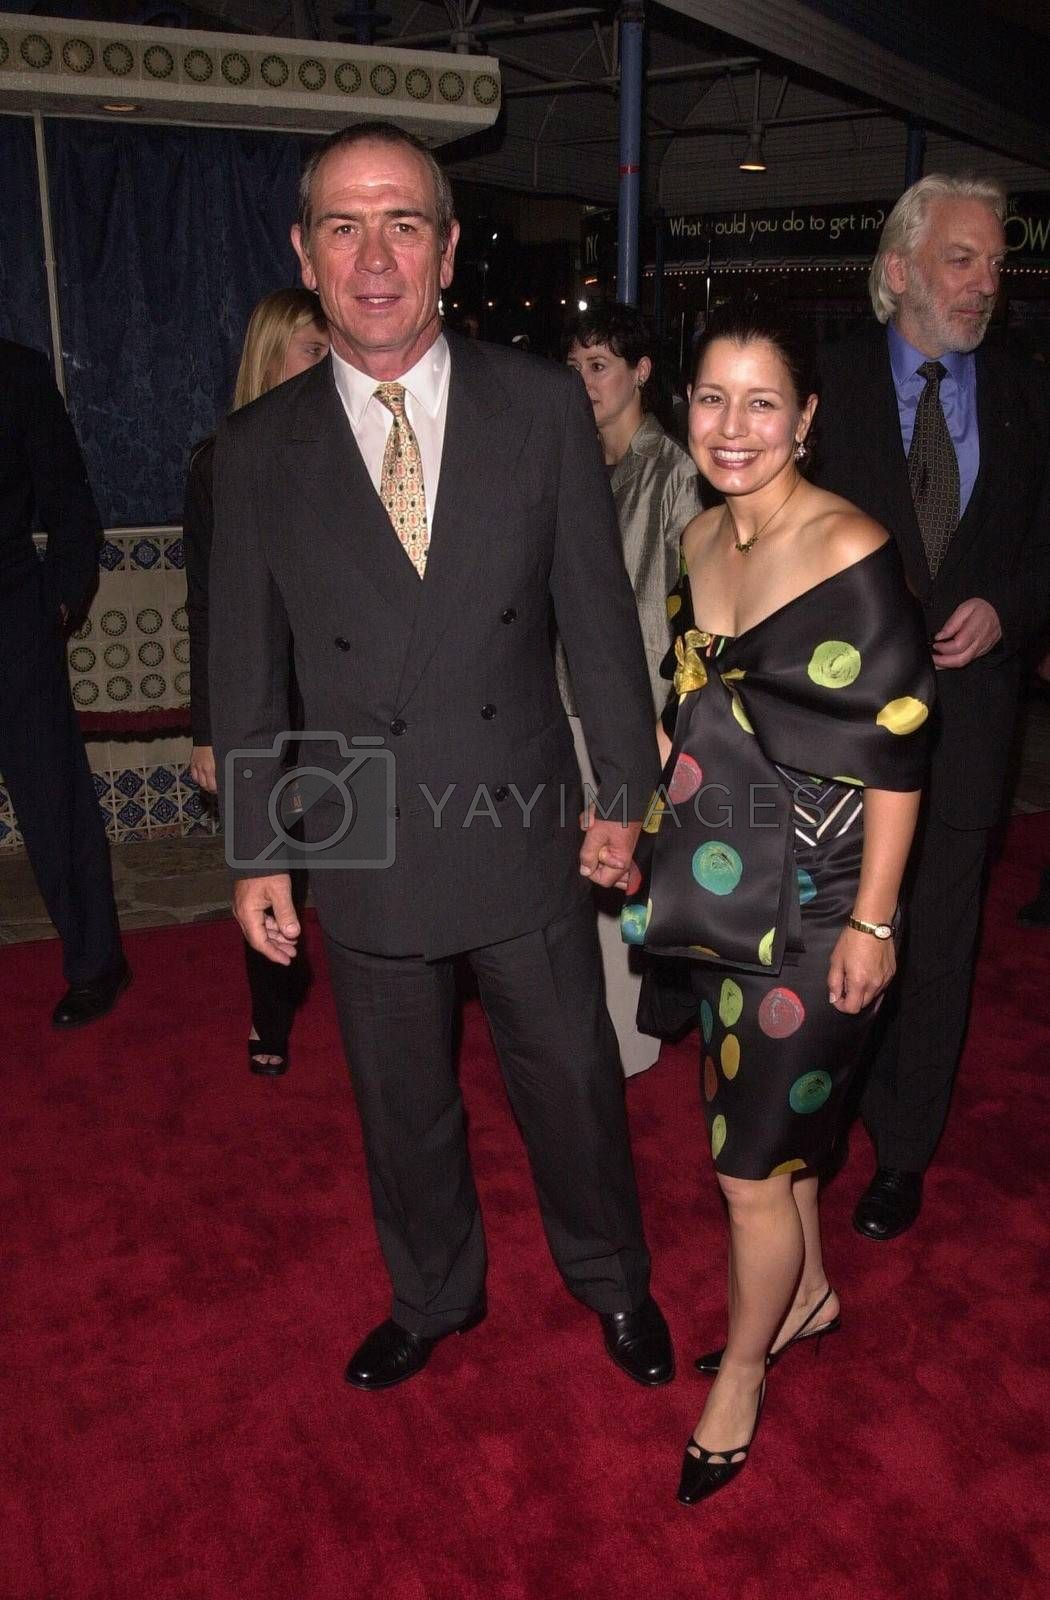 """Tommy Lee Jones and Date at the premiere of """"Space Cowboys"""" in Westwood. 08-01-00"""